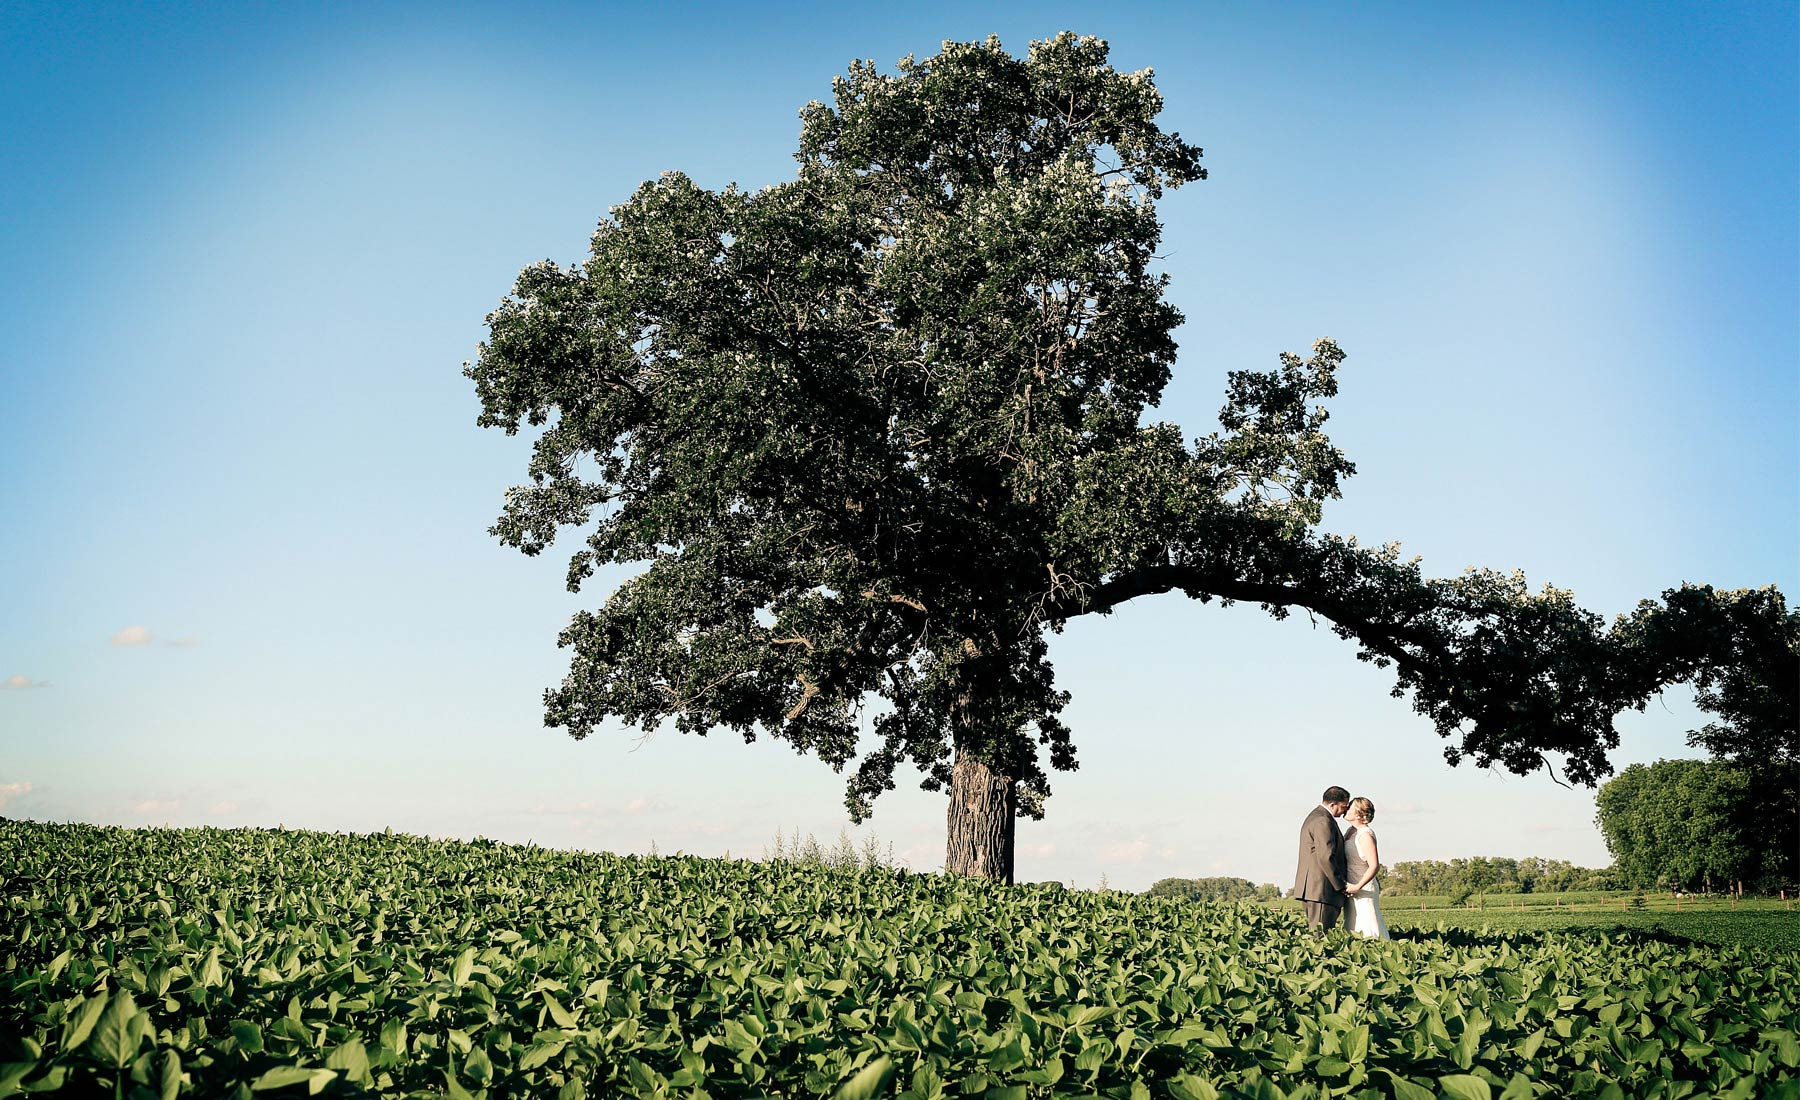 15-Minneapolis-Minnesota-Wedding-Photography-by-Vick-Photography-Minnesota-Harvest-Apple-Orchard-Emilie-&-Giovanni.jpg